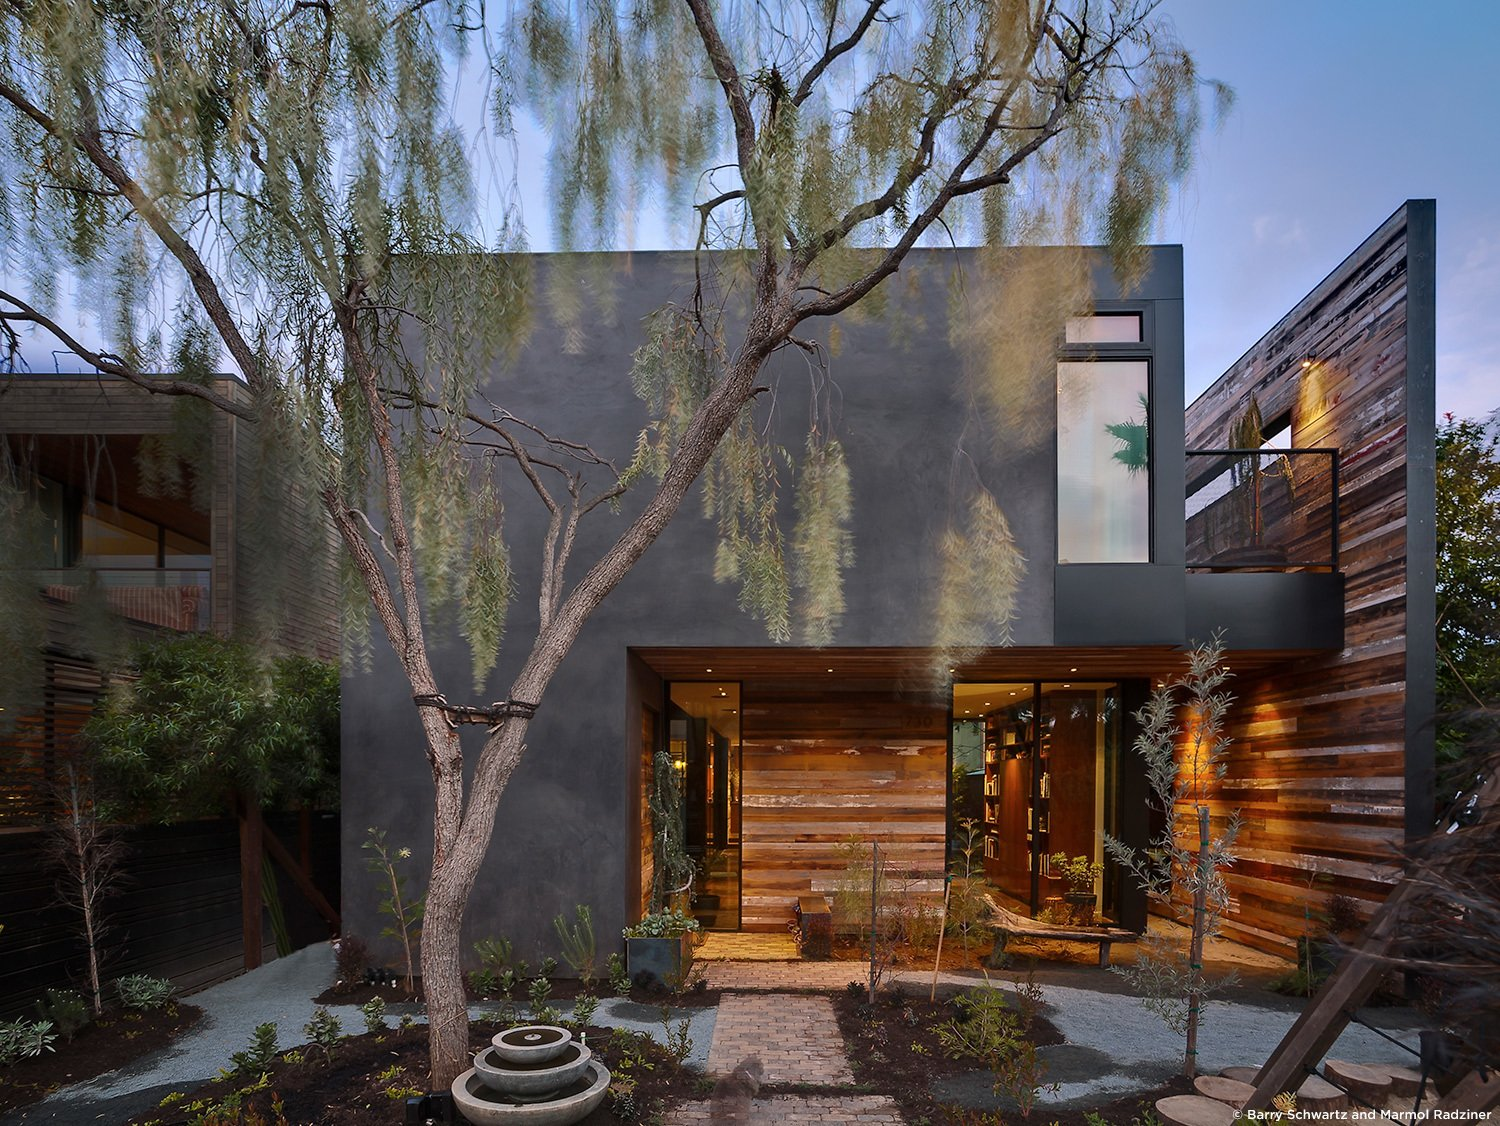 #SelaResidence #modern #midcentury #privacy #openness #two-story #lighting #exterior #outside #outdoor #landscape #green #wood #concrete #Venice #California #MarmolRadziner  Sela Residence